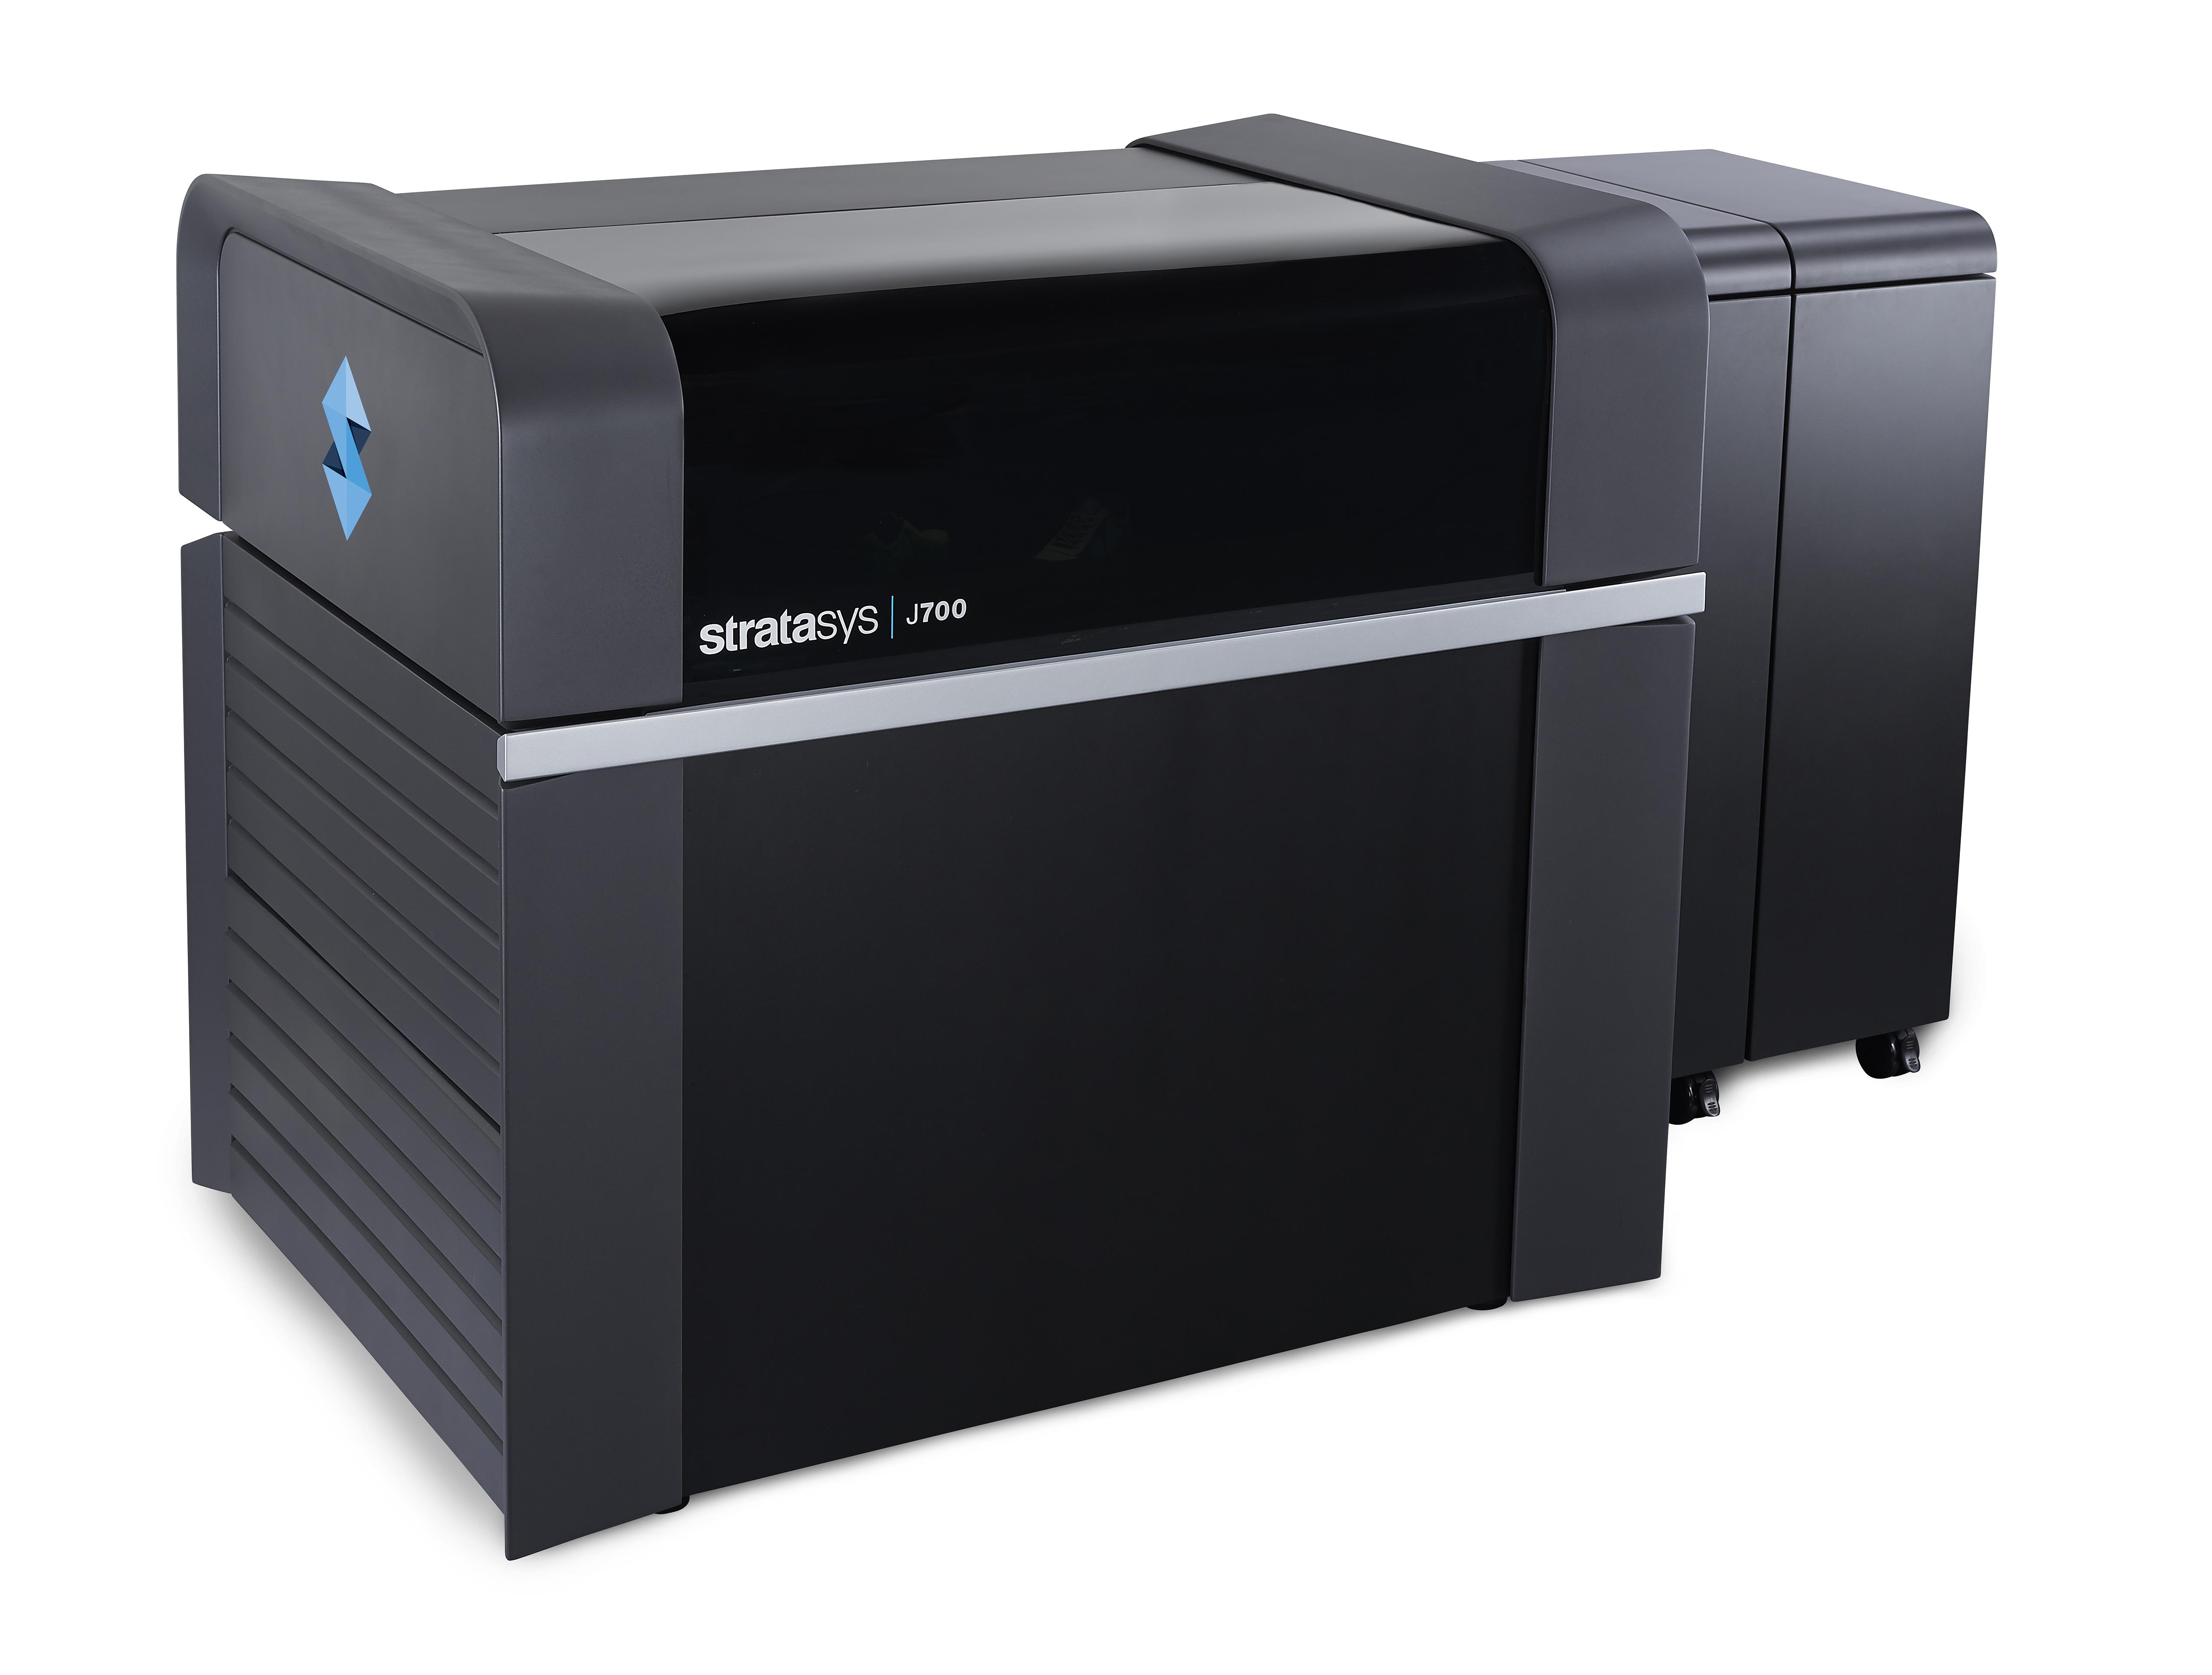 The Stratasys J700 Dental™ offers high throughput with lab production rates of more than 400 clear aligner molds per day (Photo: Stratasys Ltd.)